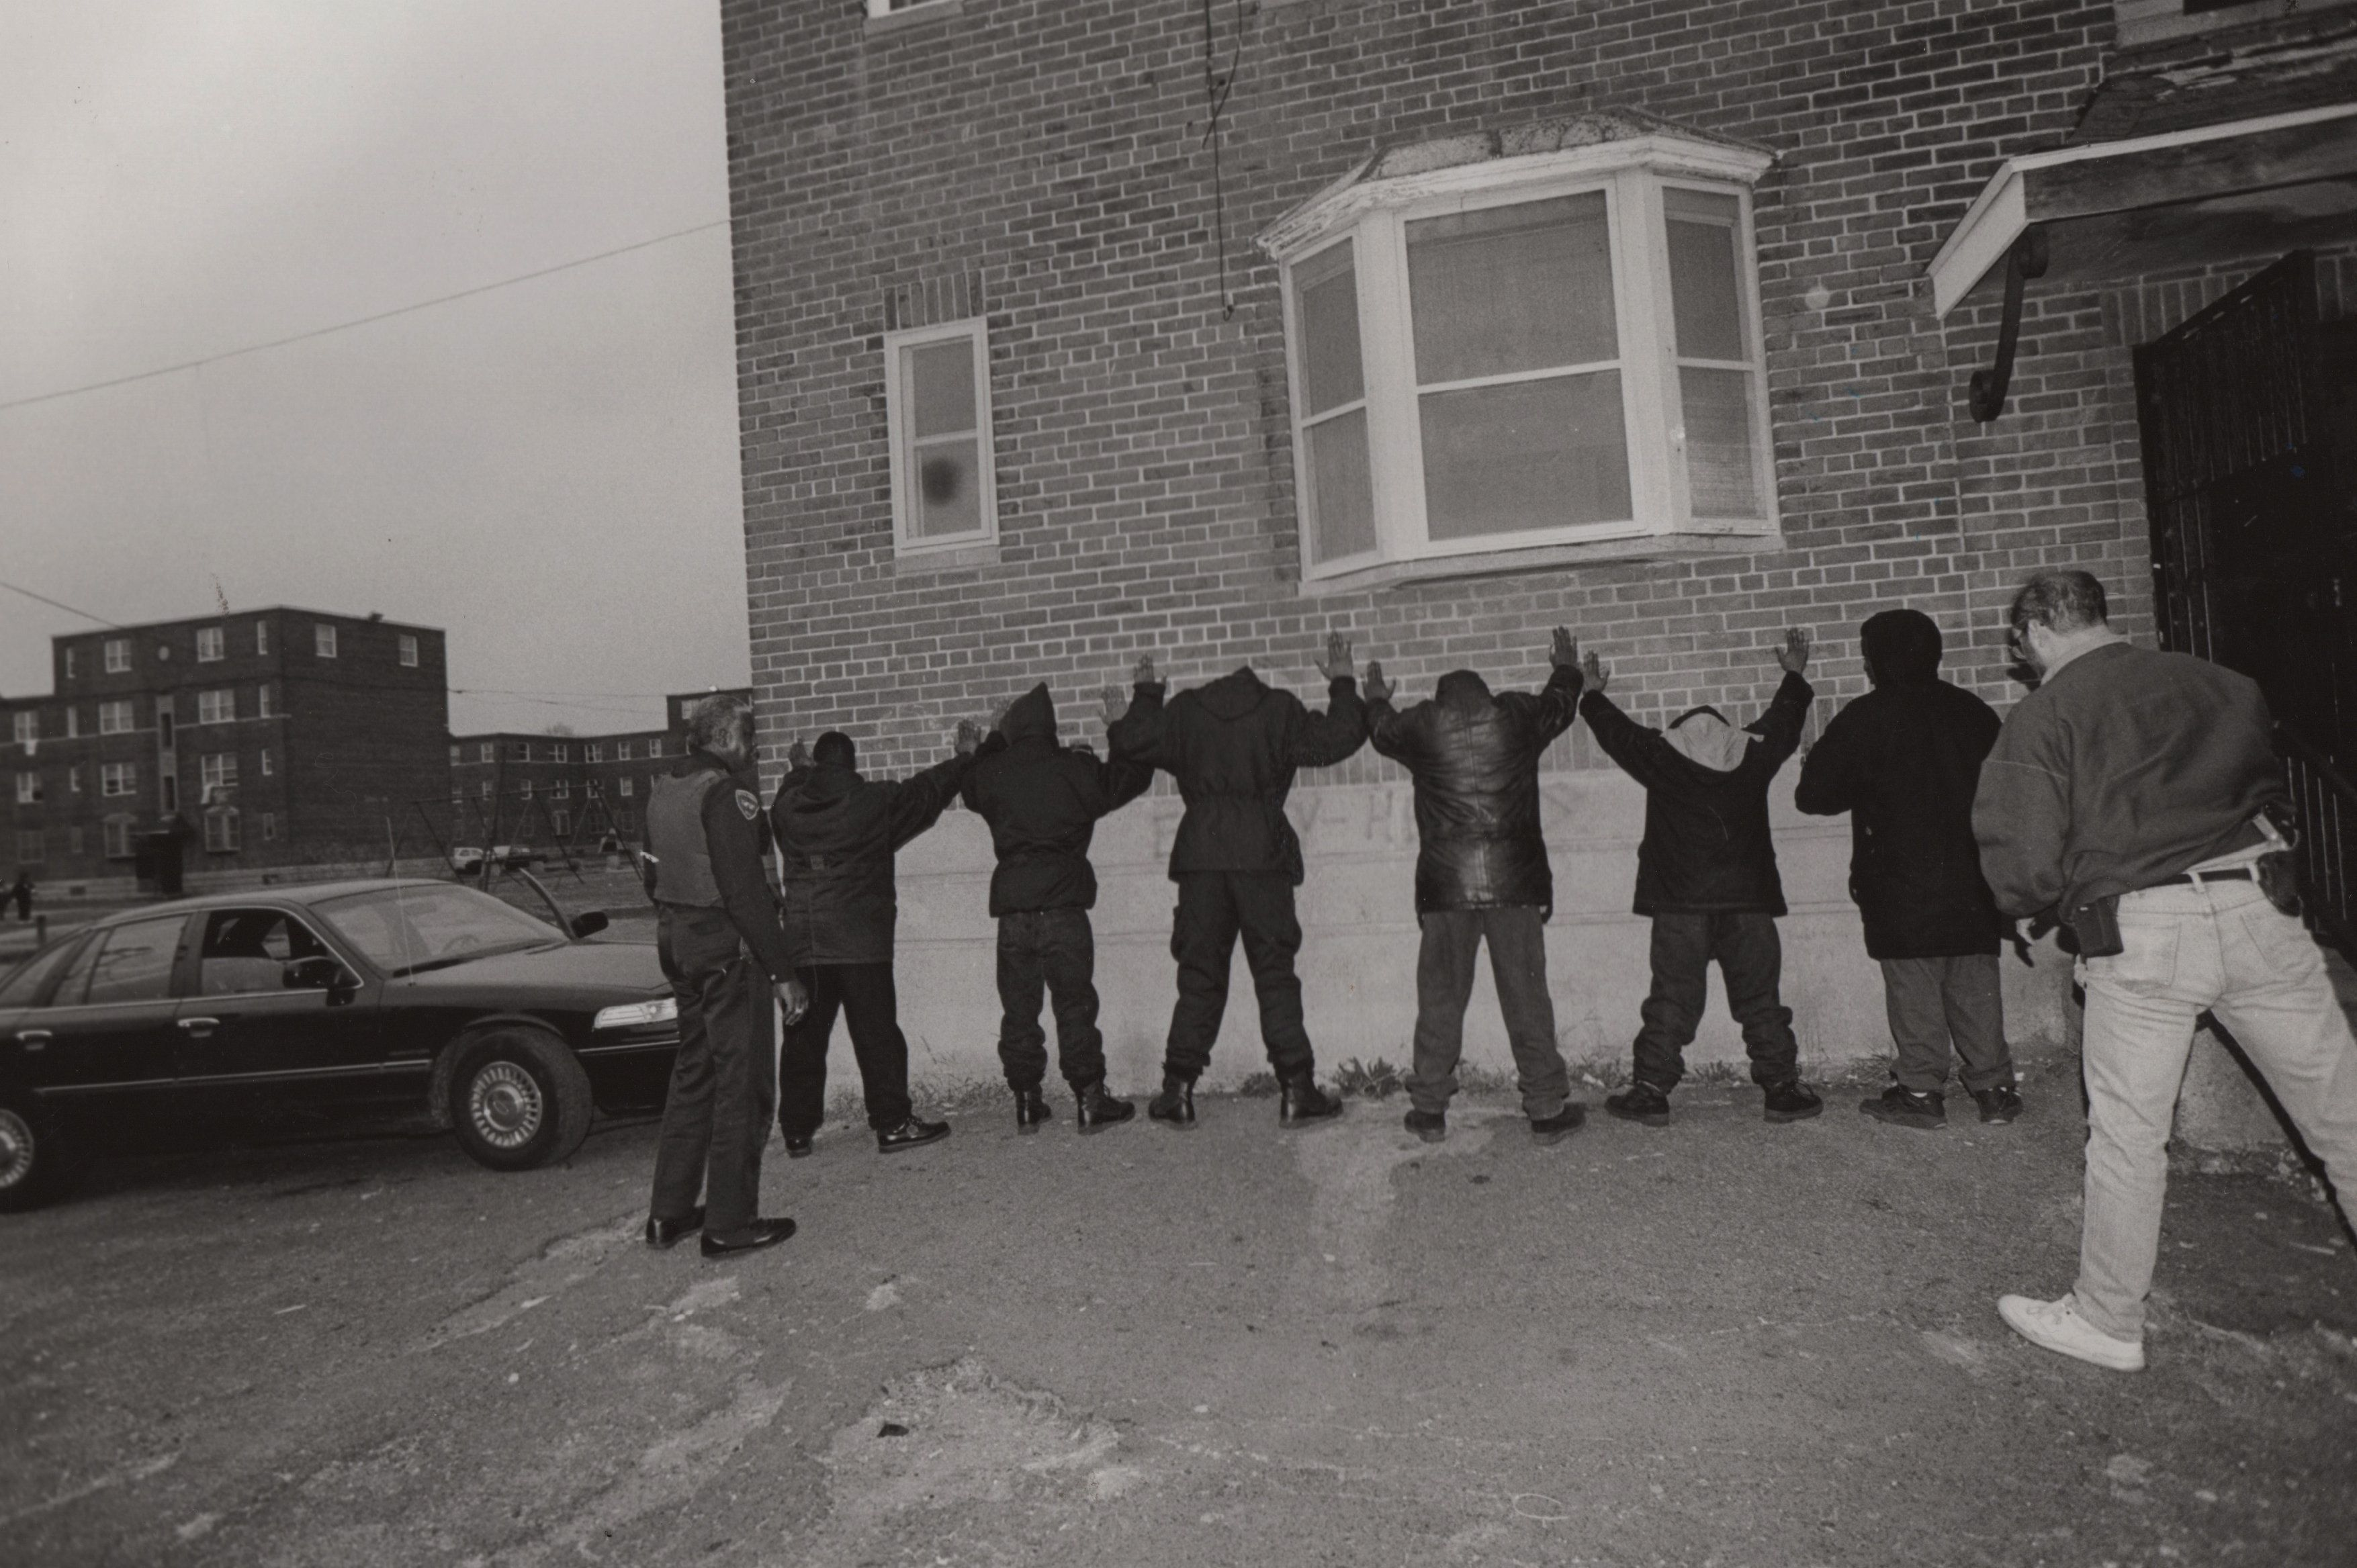 A special narcotics task force, formed by the police to combat the crack epidemic in Bridgeport, lines people up against a wall to search them in the Father Panic housing projects. (Photo by Andrew Lichtenstein/Corbis via Getty Images)